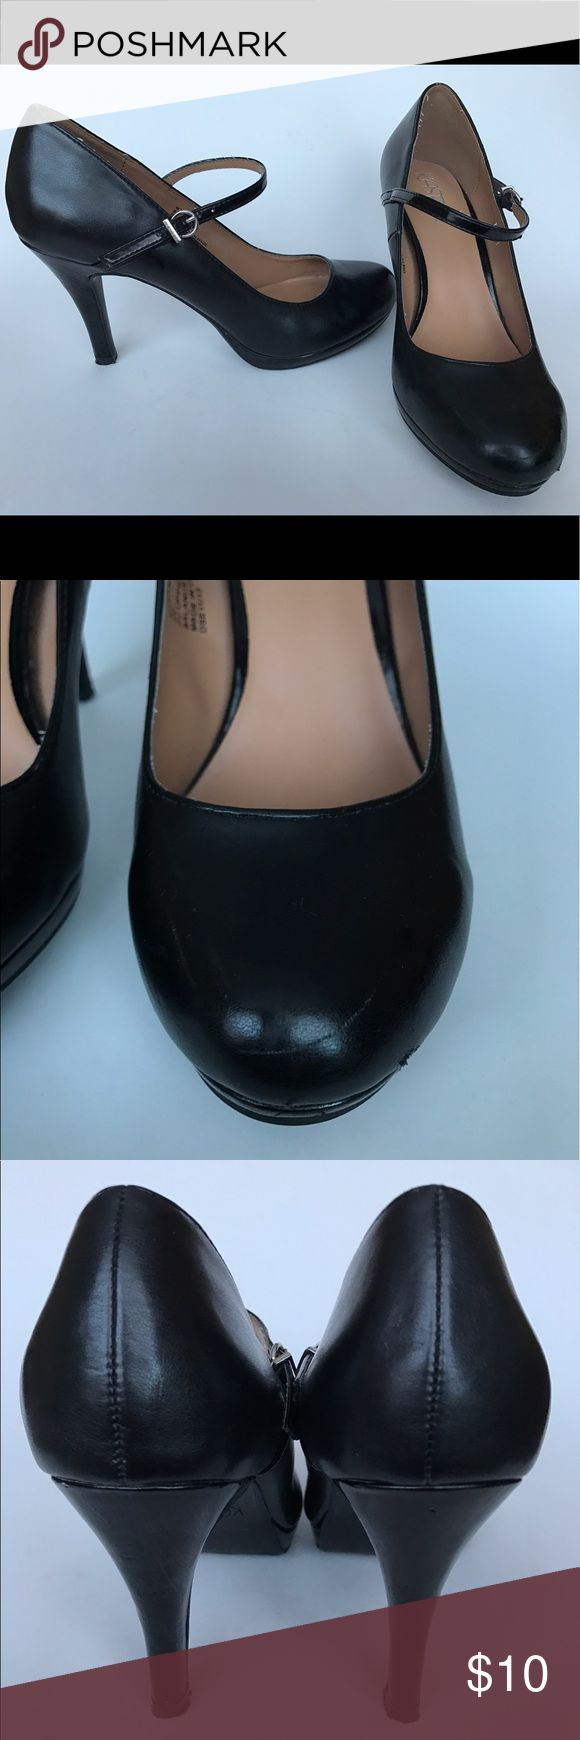 Classic Black Mary Jane Heels Classic KASPER Mary Jane black heels. Gently used and loved! Scuffed here and there (pictured) Kasper Shoes Heels